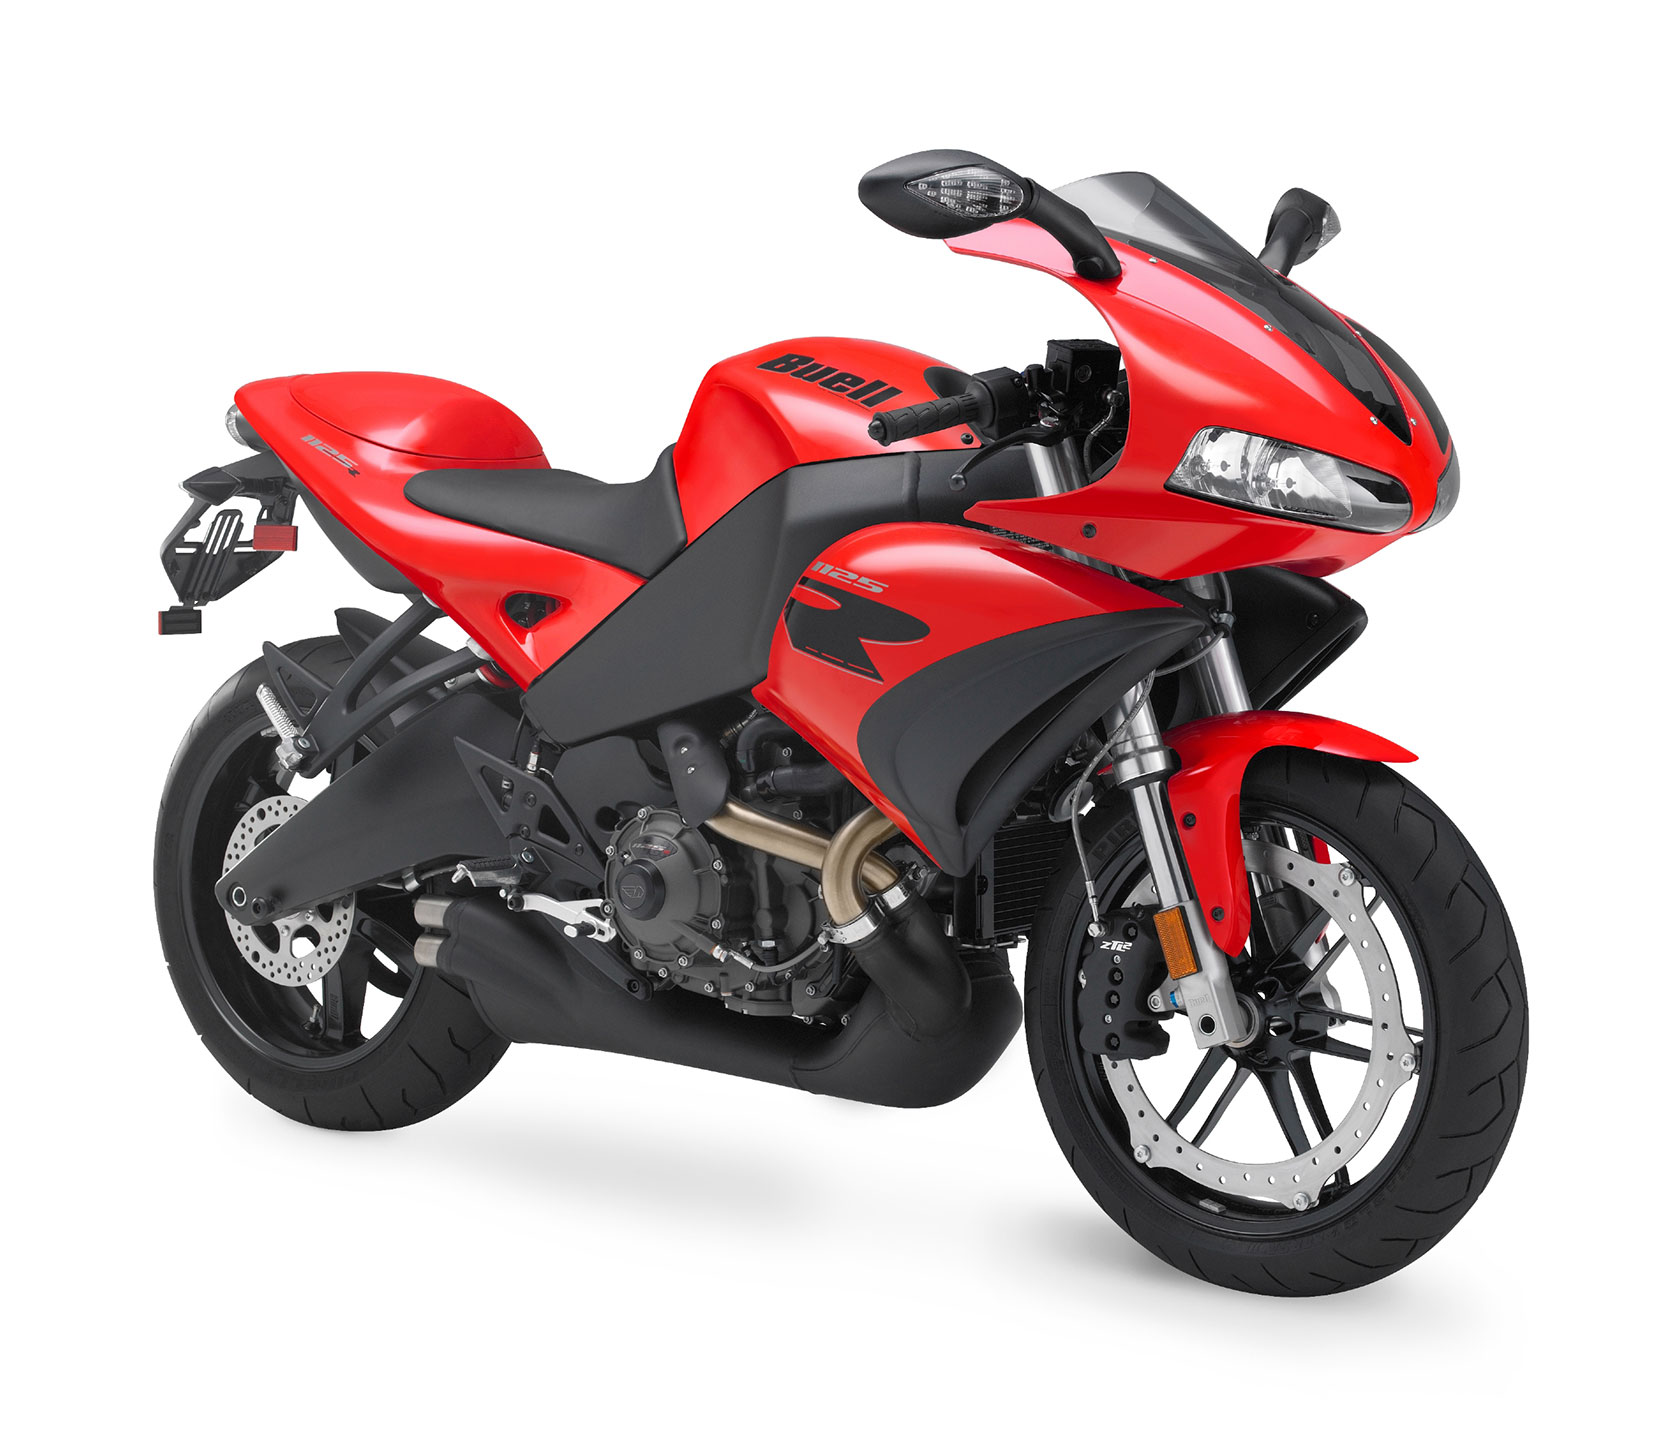 Buell 1125 R 2010 images #66448